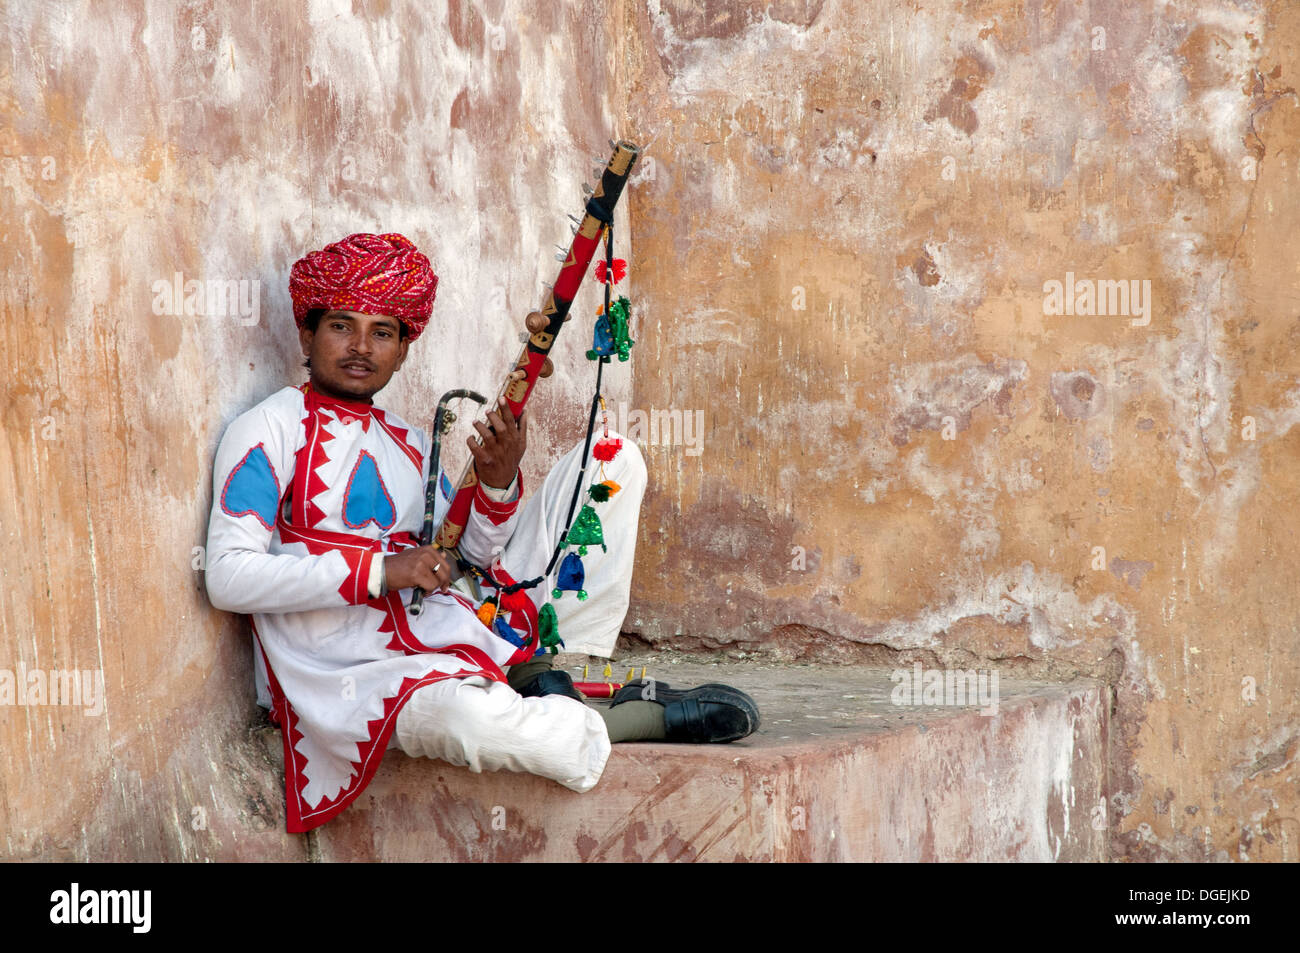 Rajasthani man posing with traditional instrument inside Amer Fort, Jaipur, India Stock Photo